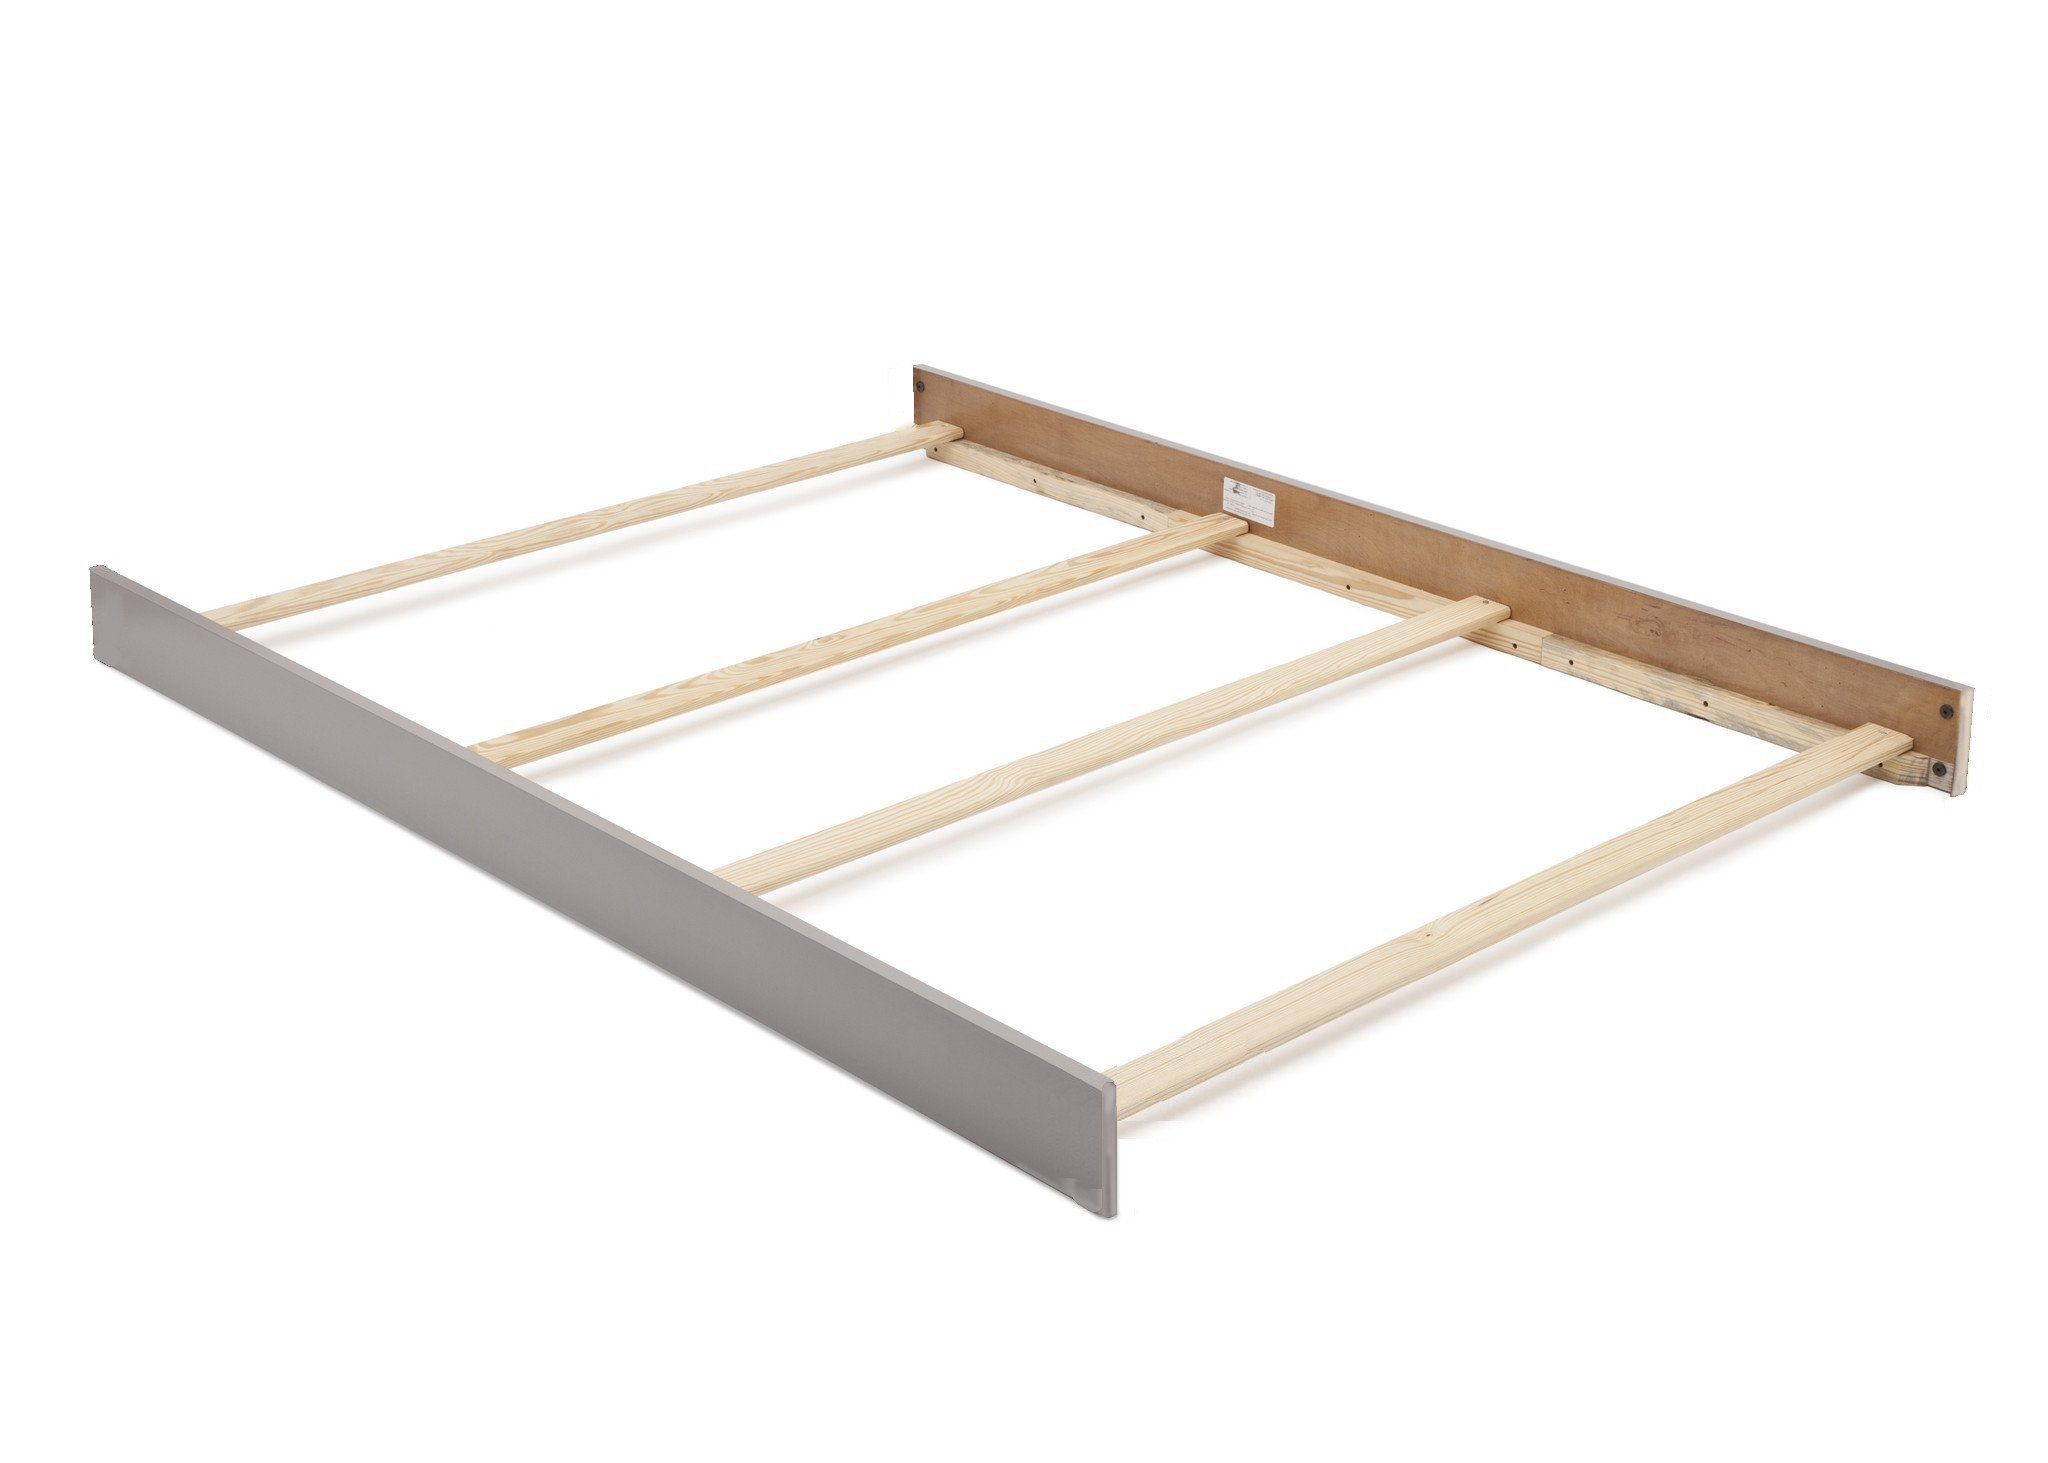 Full Size Conversion Kit Bed Rails for Munire's Kingsley Baby Jackson Crib - Ash Gray by CC KITS (Image #1)